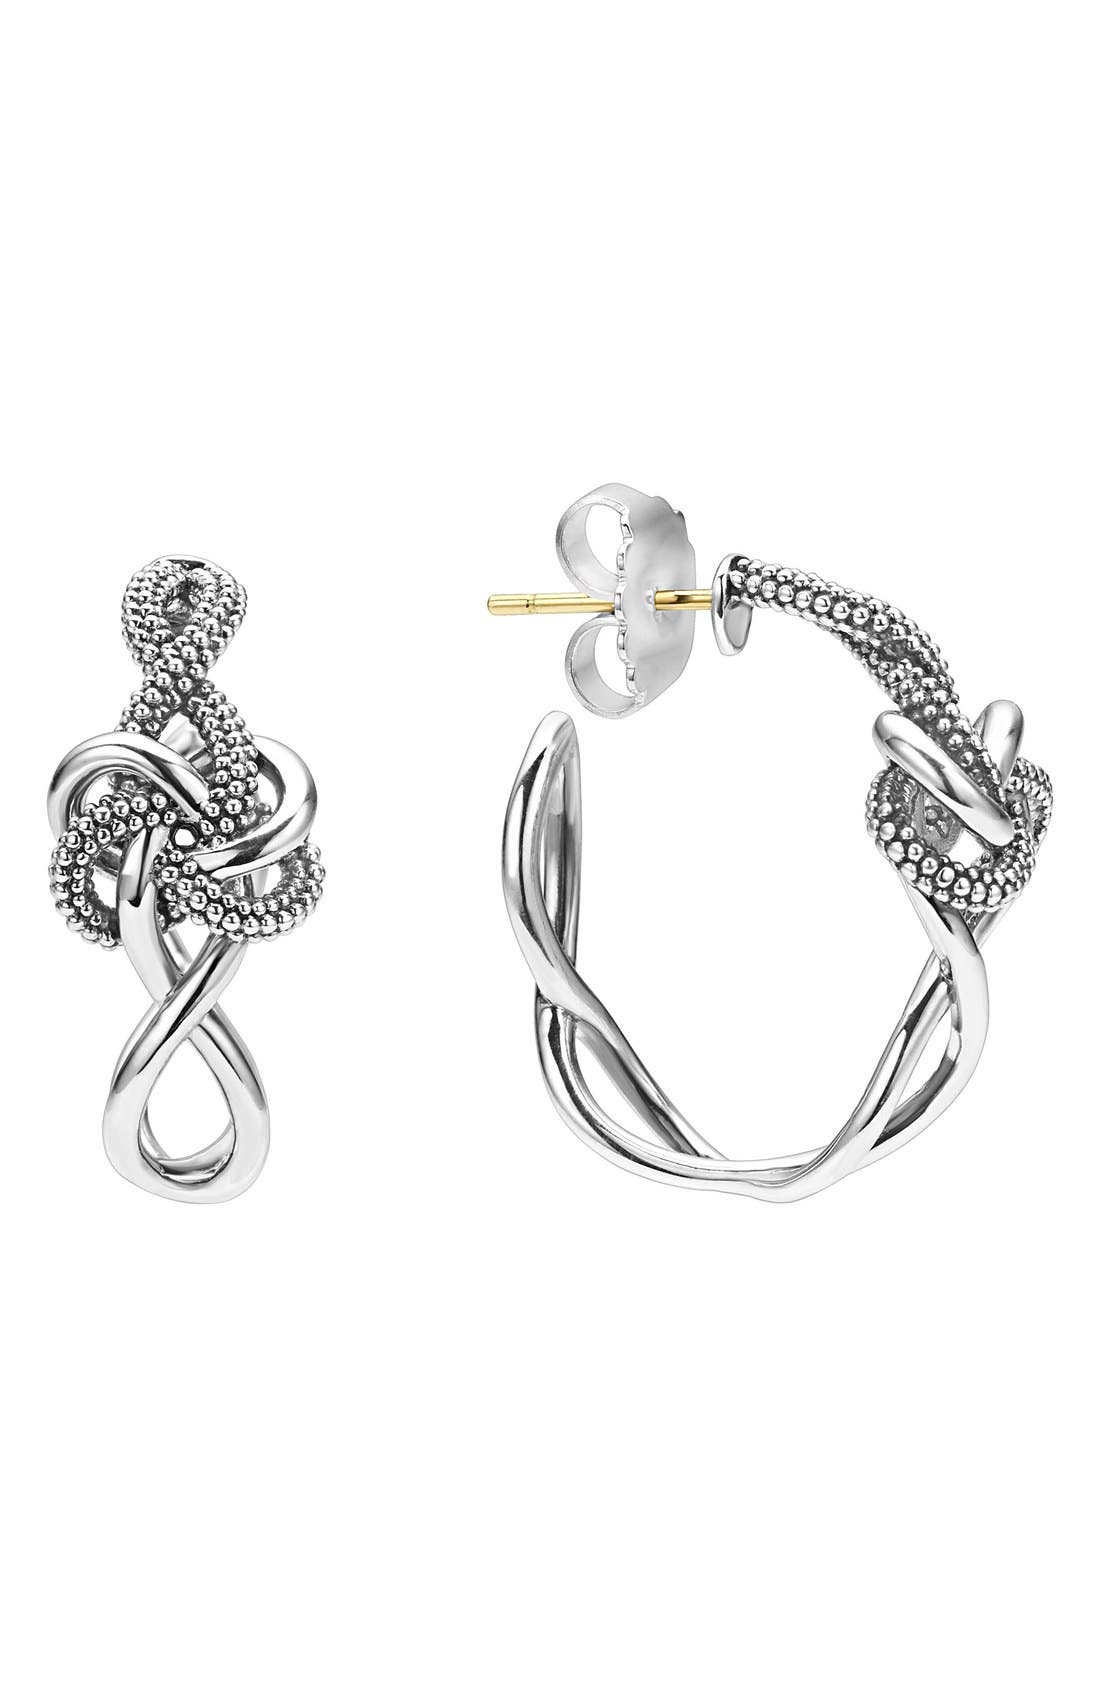 'Love Knot' Hoop Earrings,                         Main,                         color, Sterling Silver